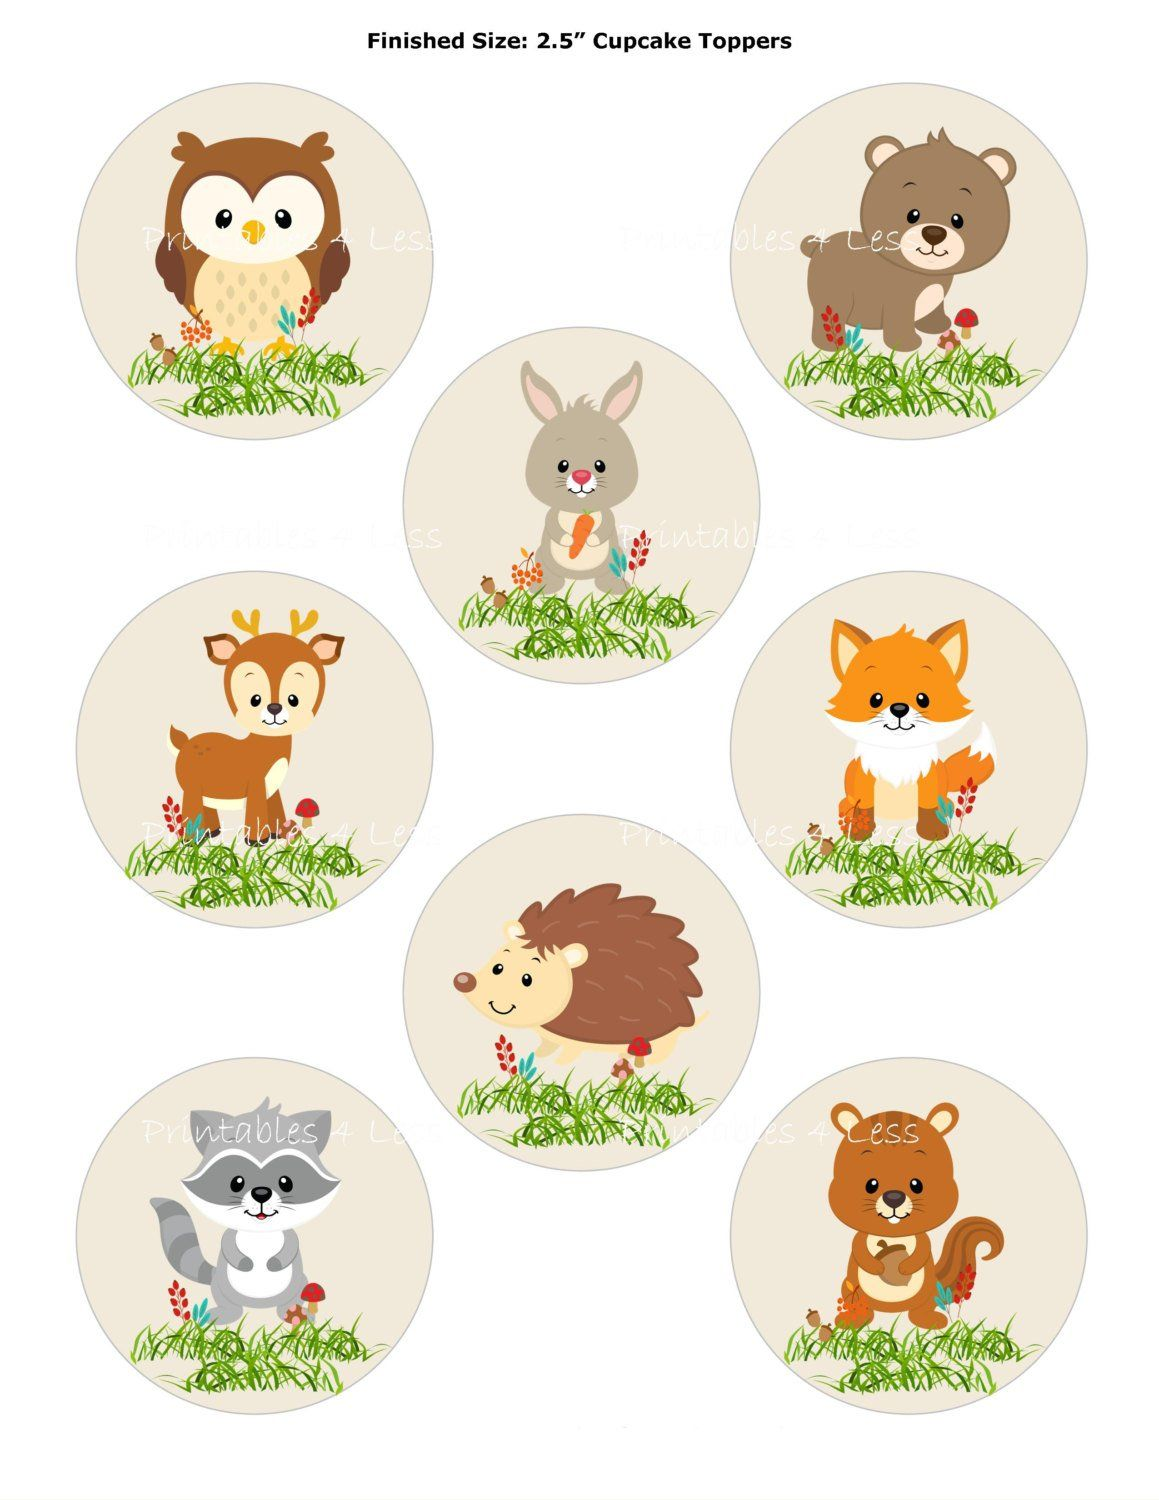 Woodland Cupcake Topper Forest Cupcake Topper Fox Cupcake Topper Woodland Animal Topper Printable Woodland Baby Printables 4 Less 0087 Woodland Animal Toppers Baby Shower Cupcake Toppers Animal Baby Shower